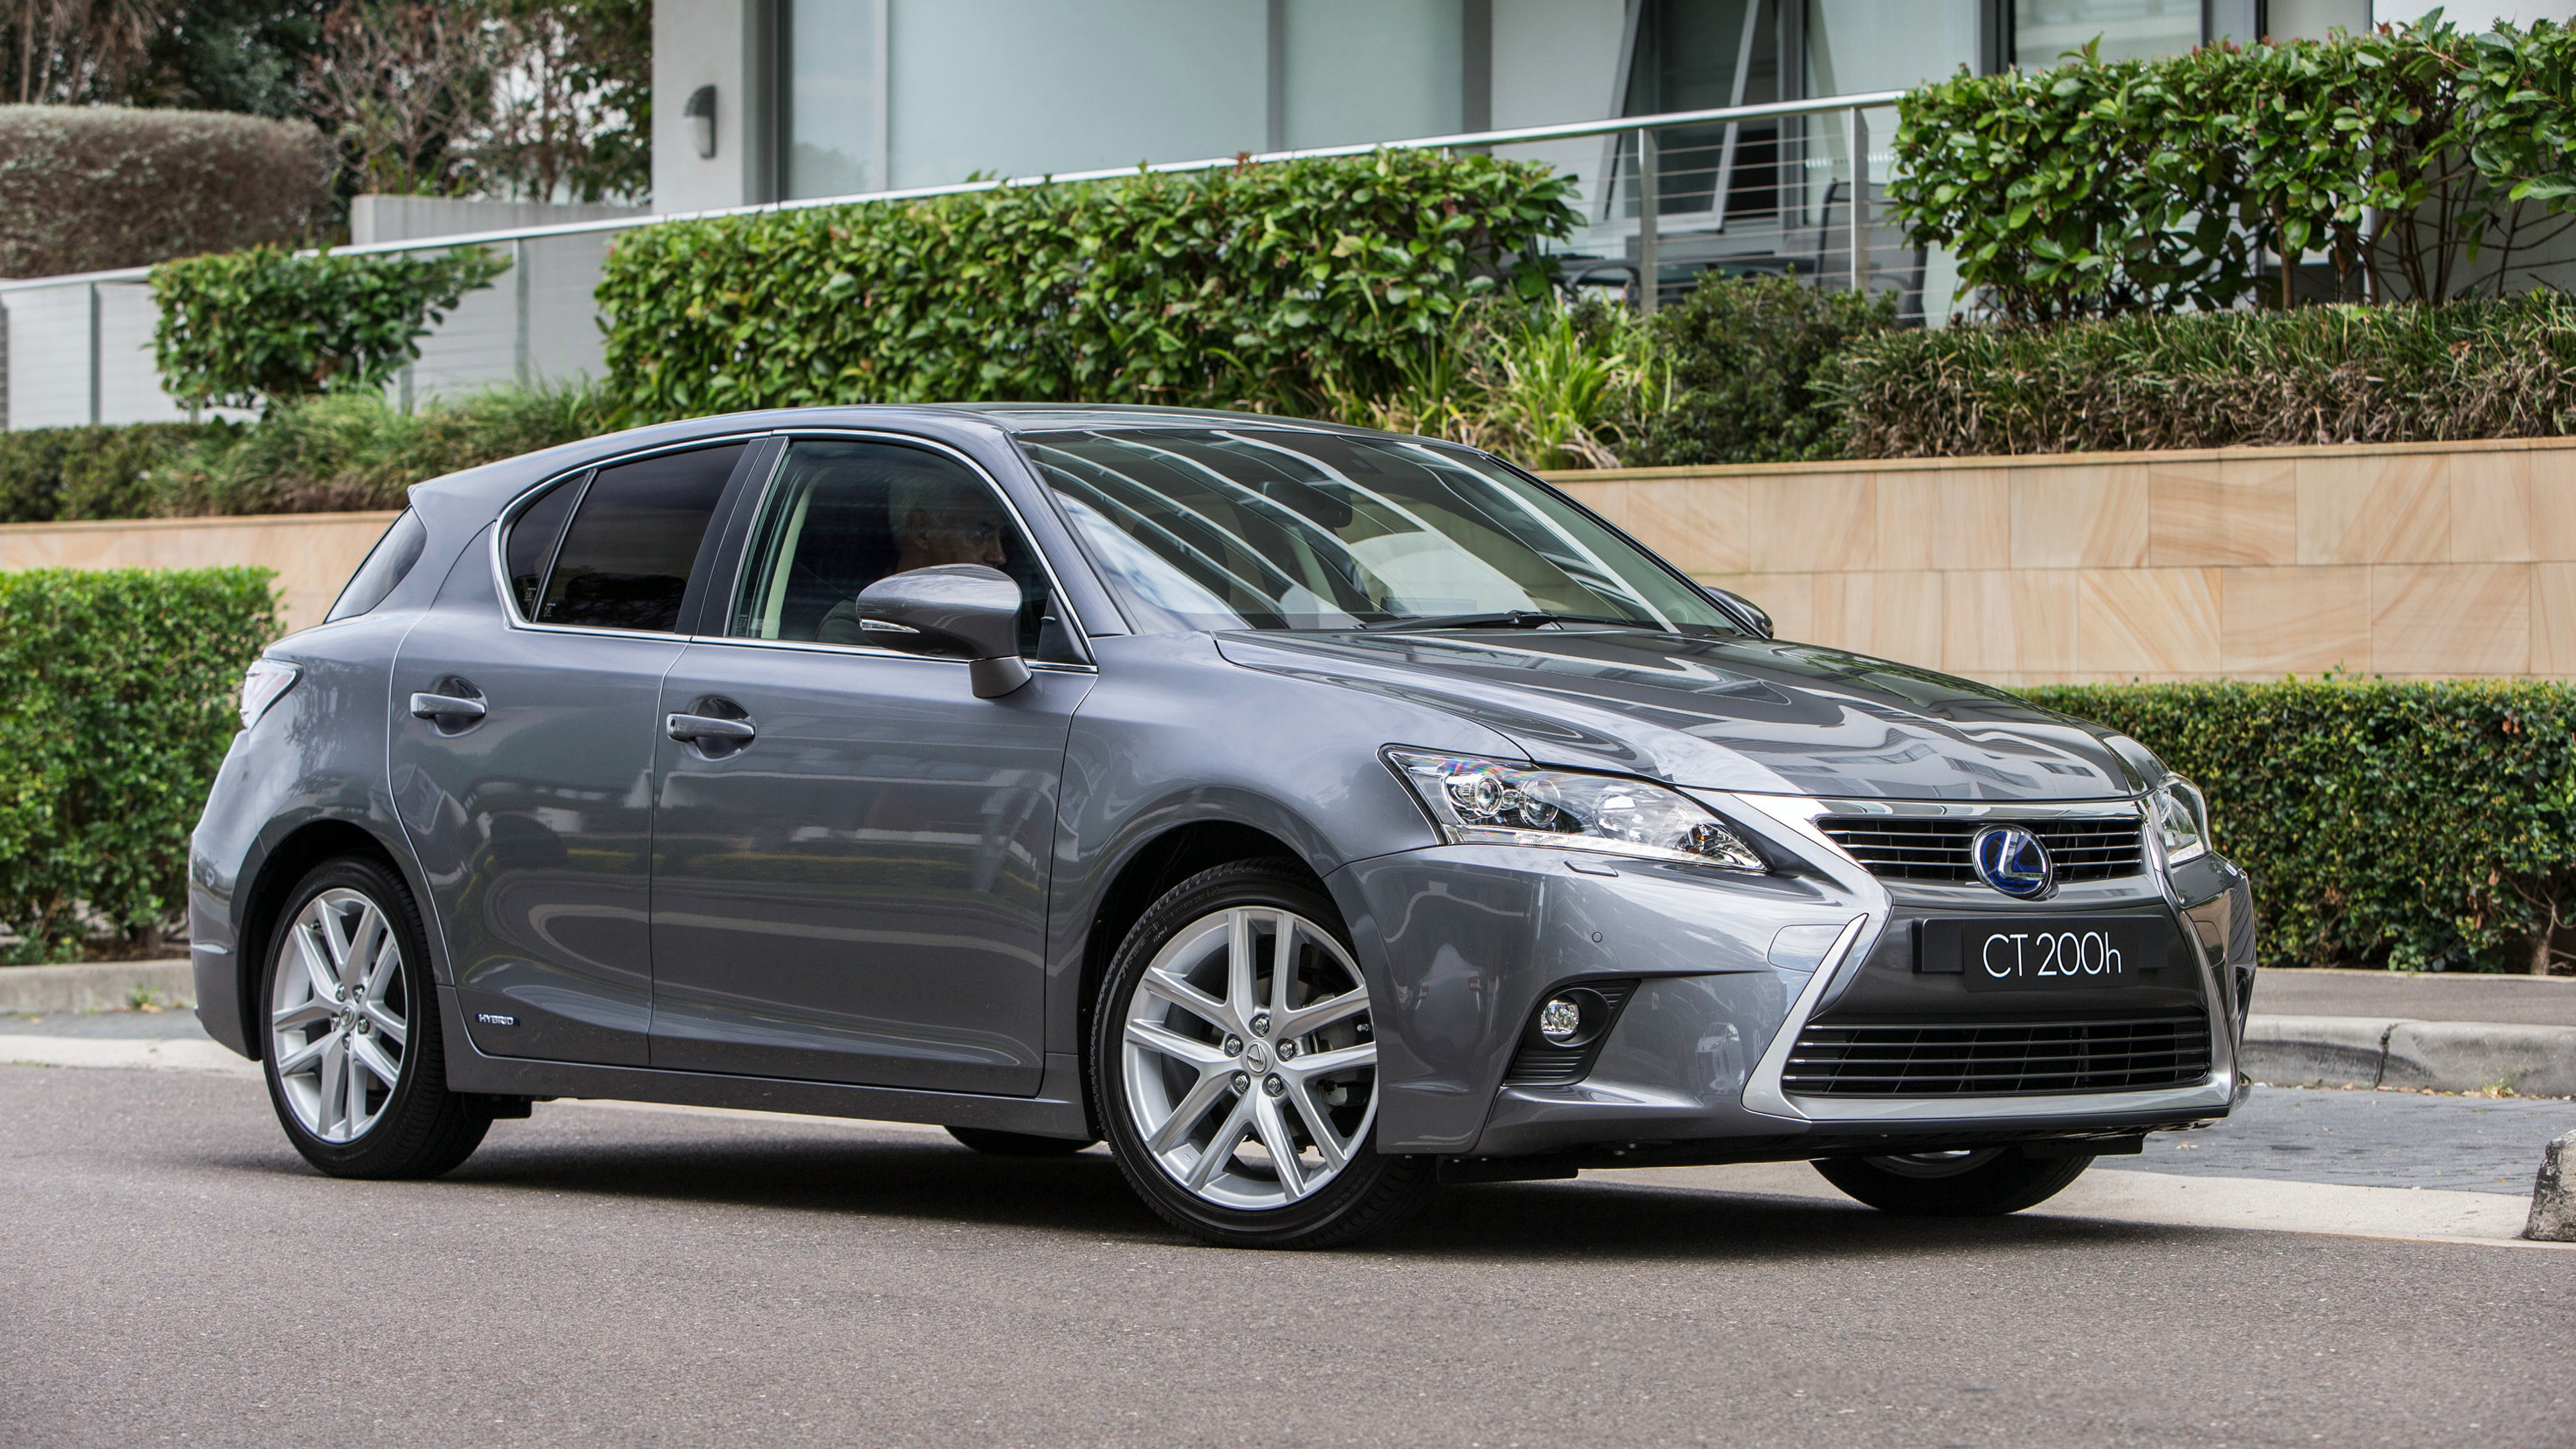 lexus ct200h review 2014 chasing cars. Black Bedroom Furniture Sets. Home Design Ideas